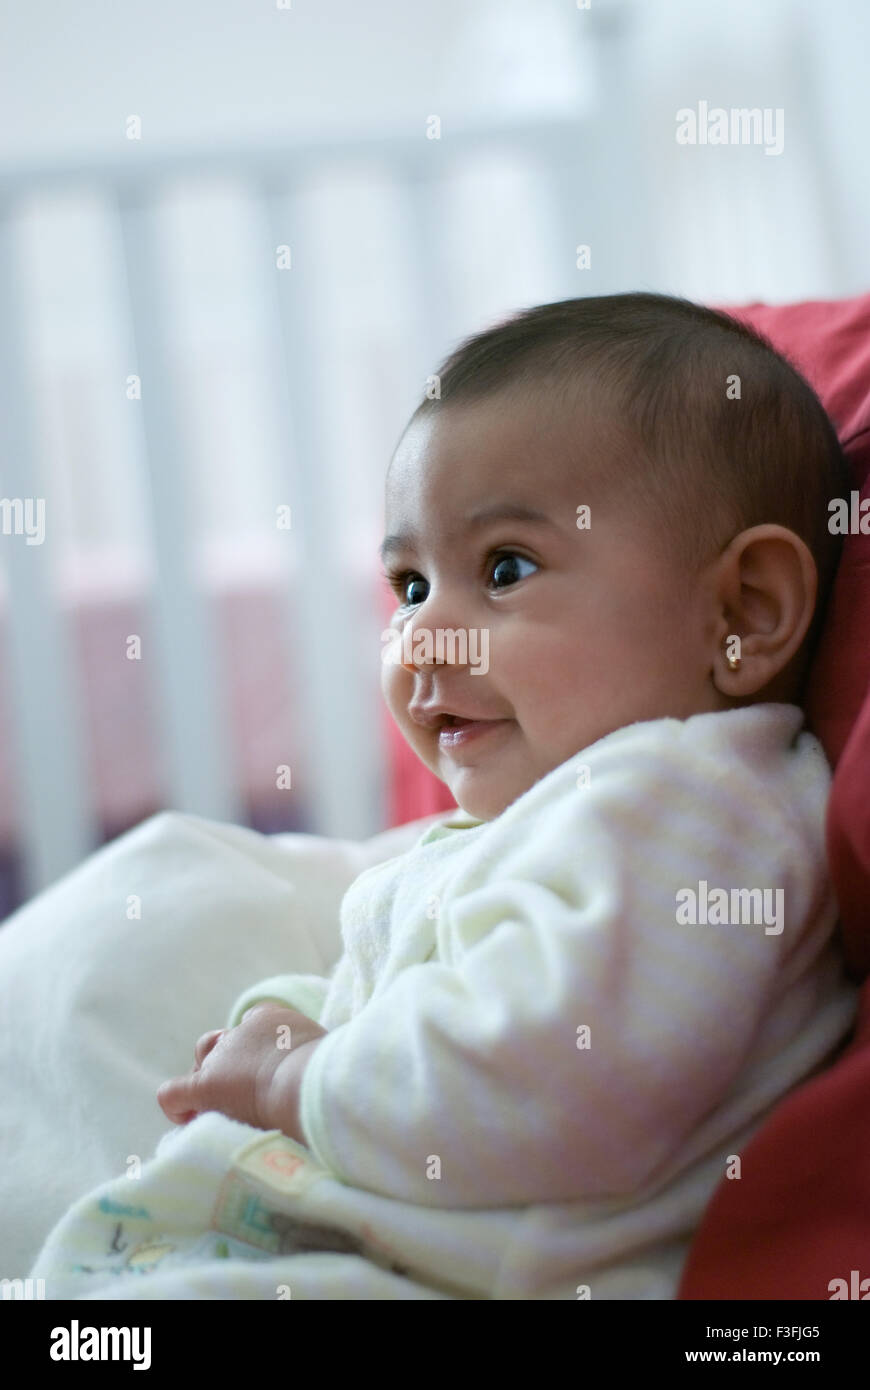 Baby Girl Namya ; two months old ; face ; expressions ; emotions and moods MR - Stock Image